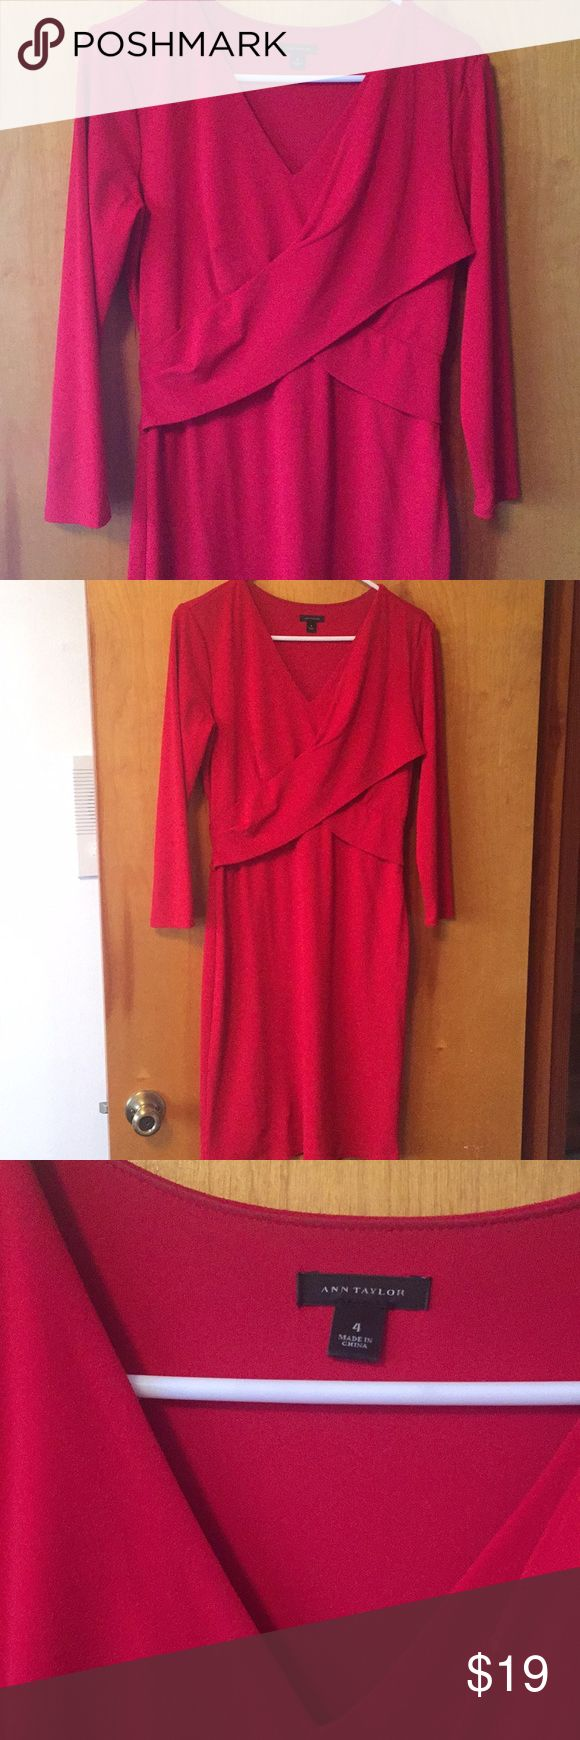 Amazing ❤️ Ann Taylor Dress Beautiful and form fitting red Ann Taylor dress Size 4 ❤️  Hugs in all the right places. Zips on side. Quarter sleeve.  Only issue is tiny hole in bottom right of dress, barley noticeable. Thus major price reduction 🚨 Ann Taylor Dresses